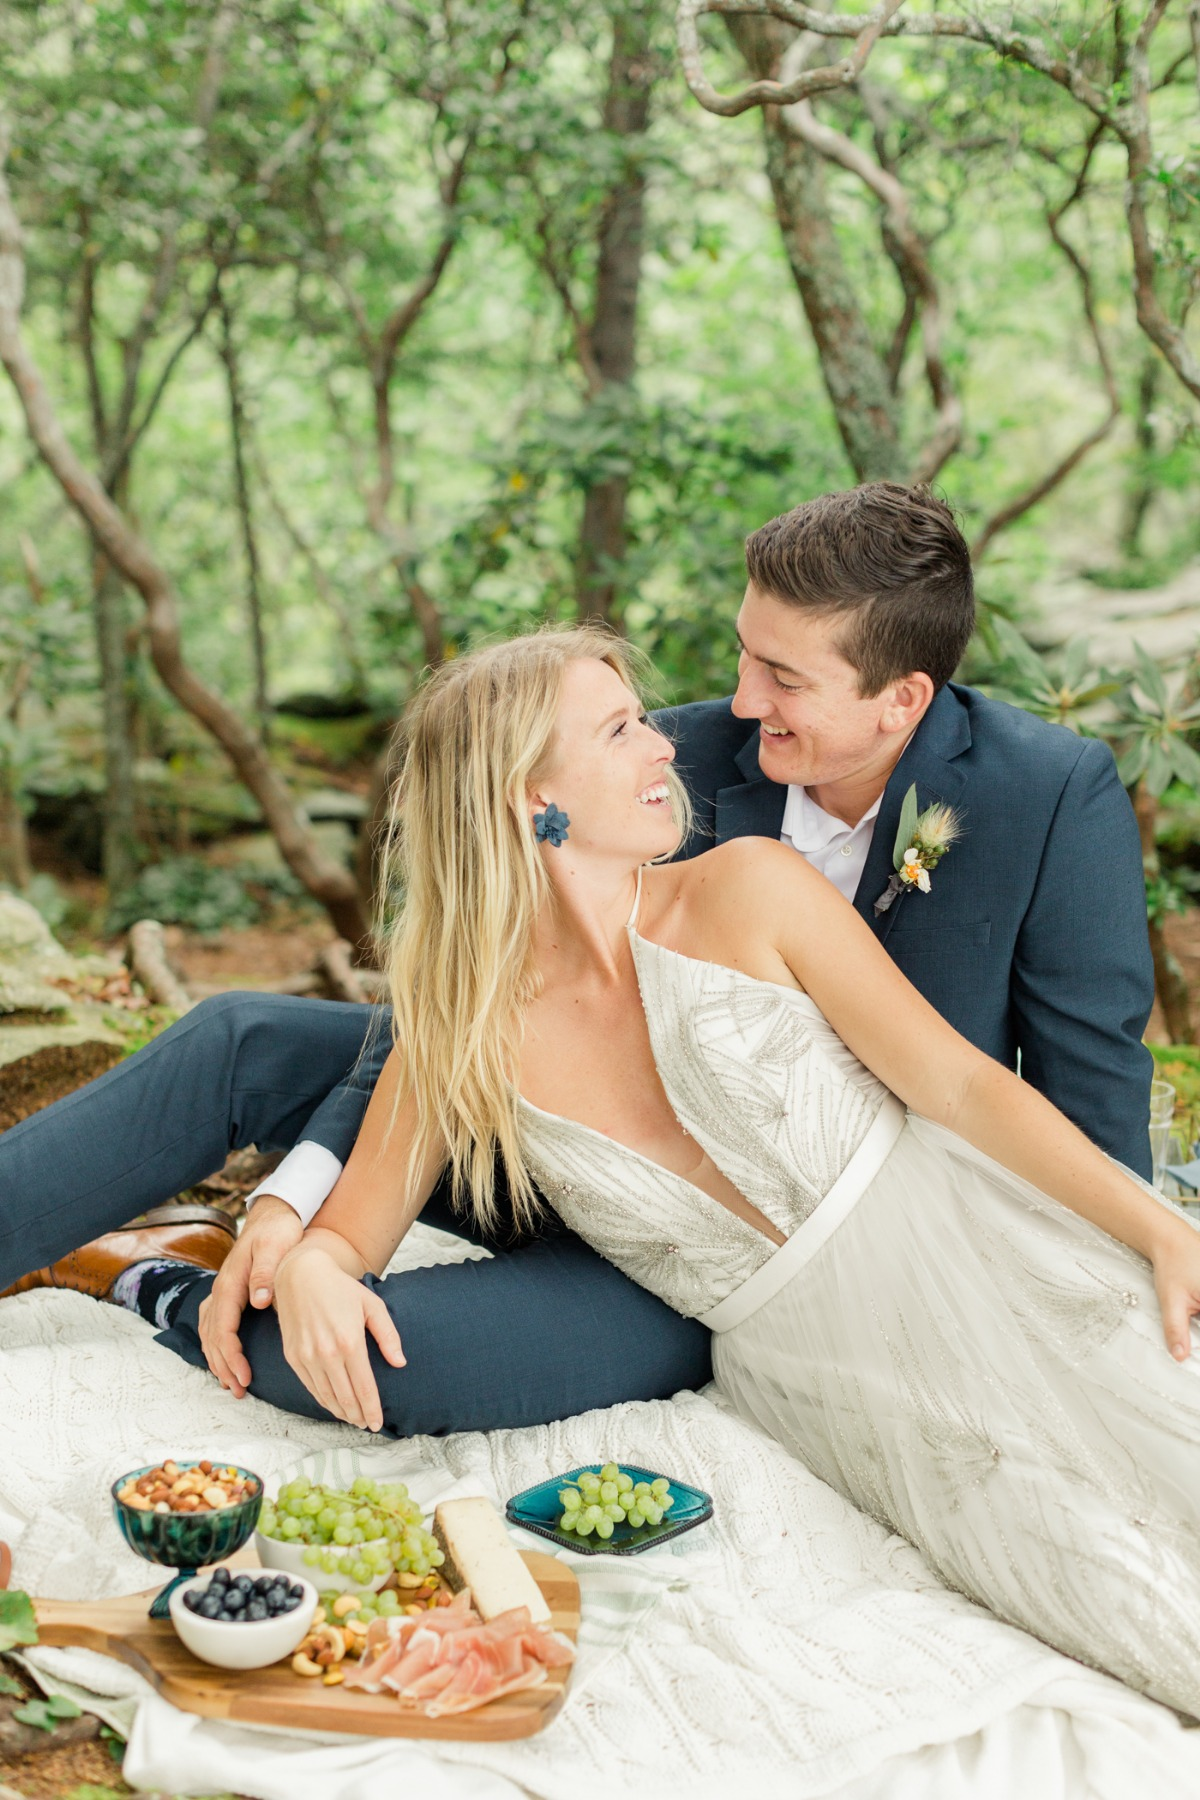 wedding couple at a forest picnic